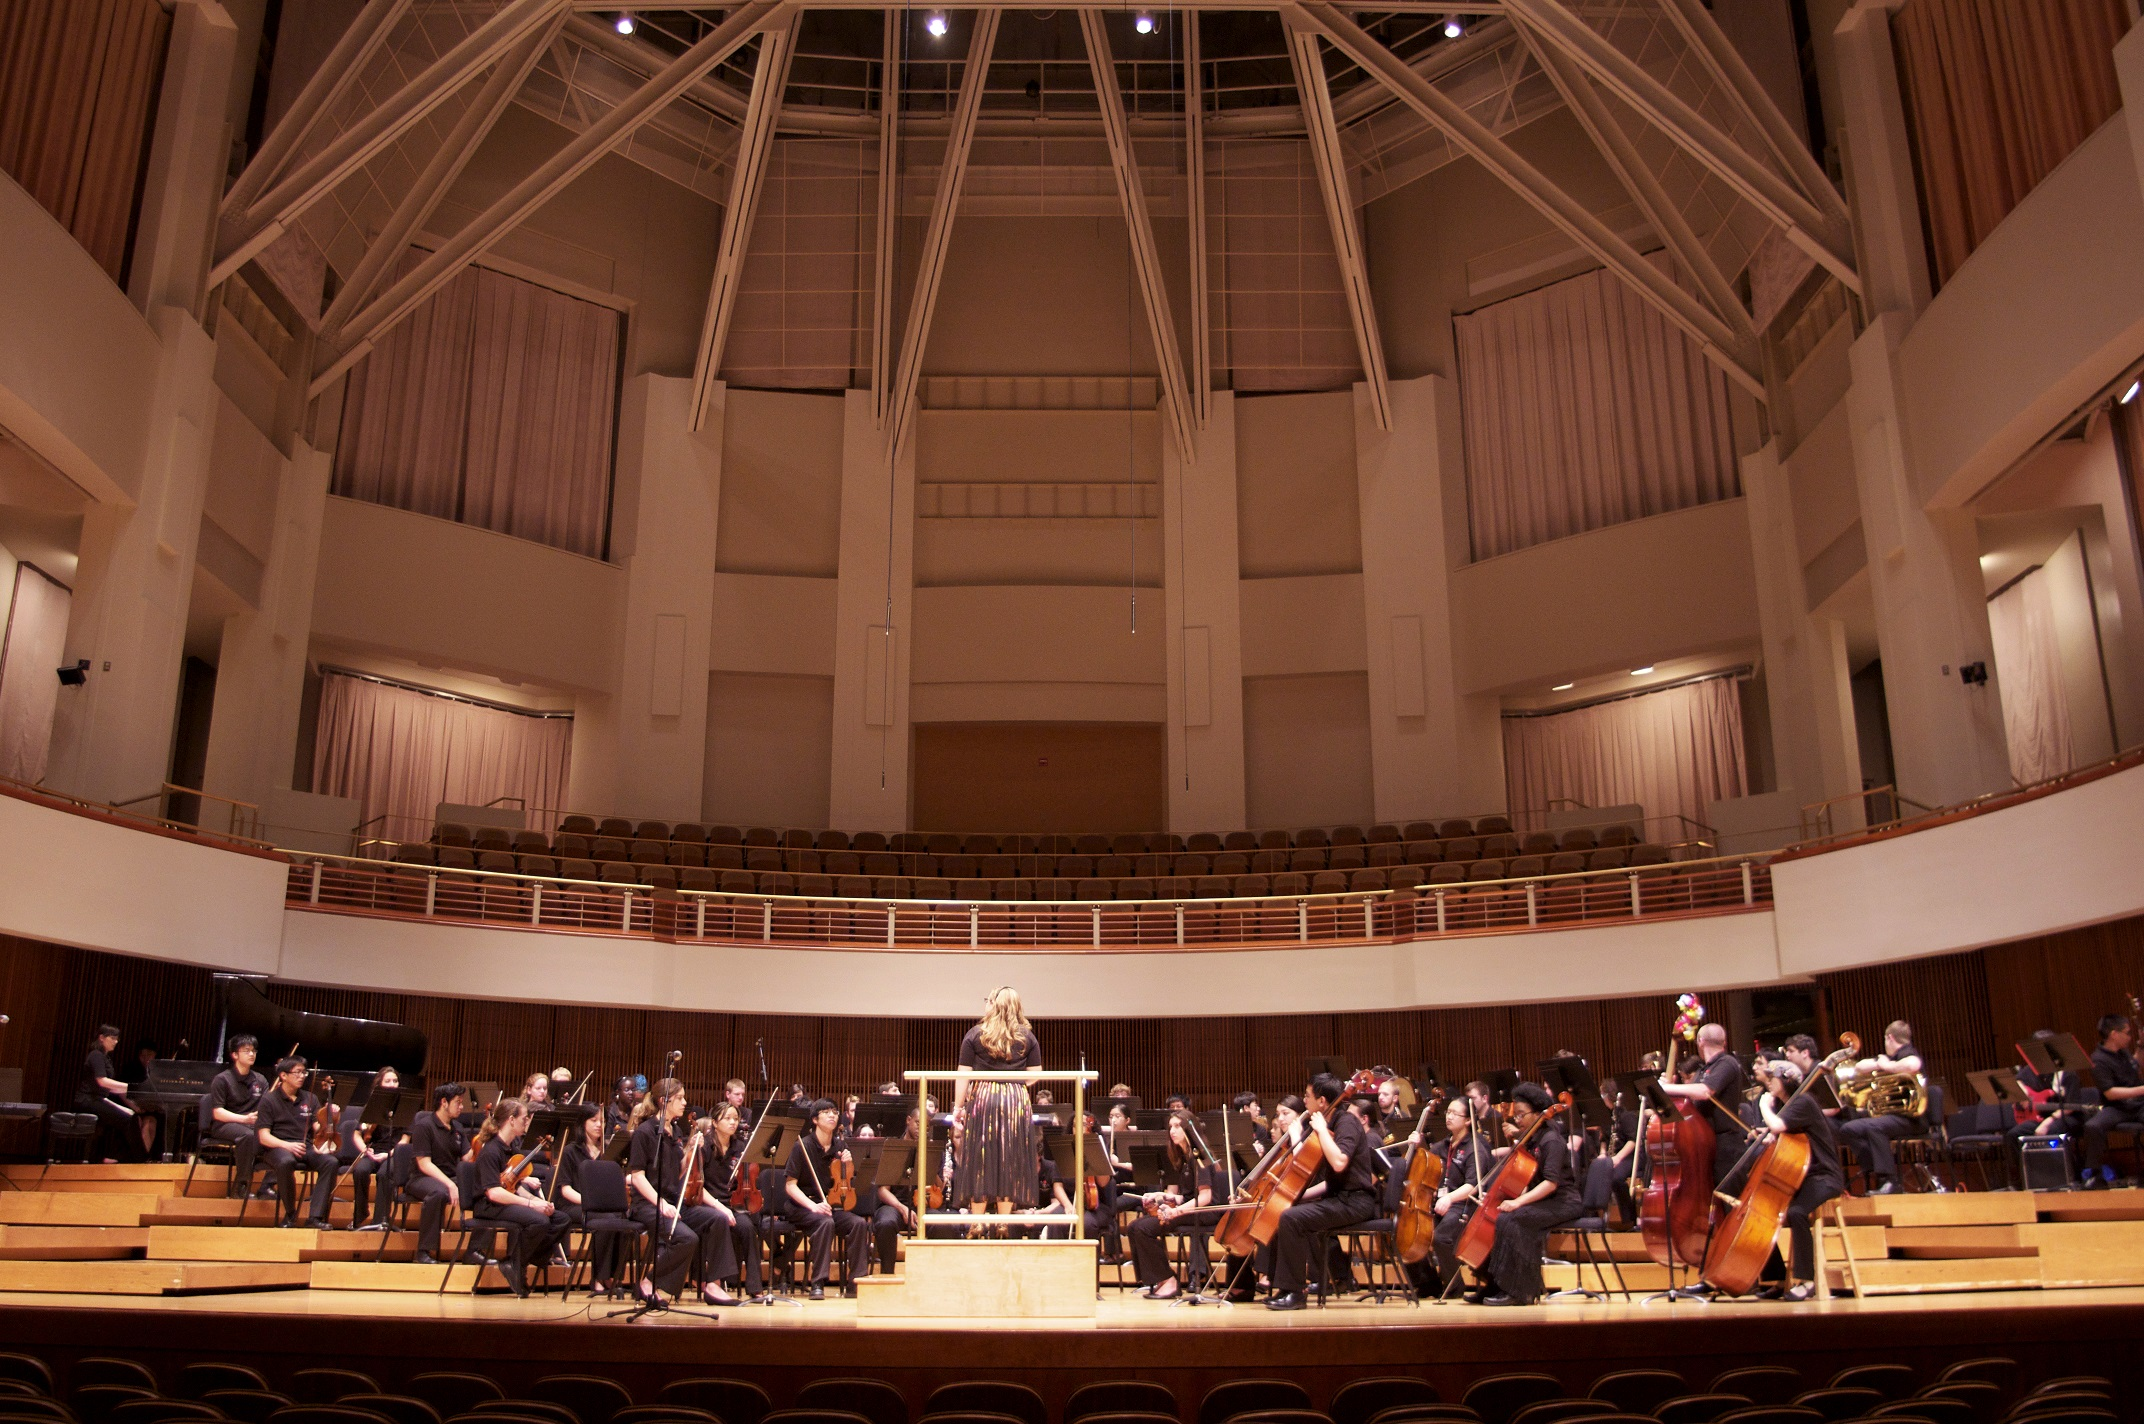 The Gamer Symphony Orchestra at the University of Maryland